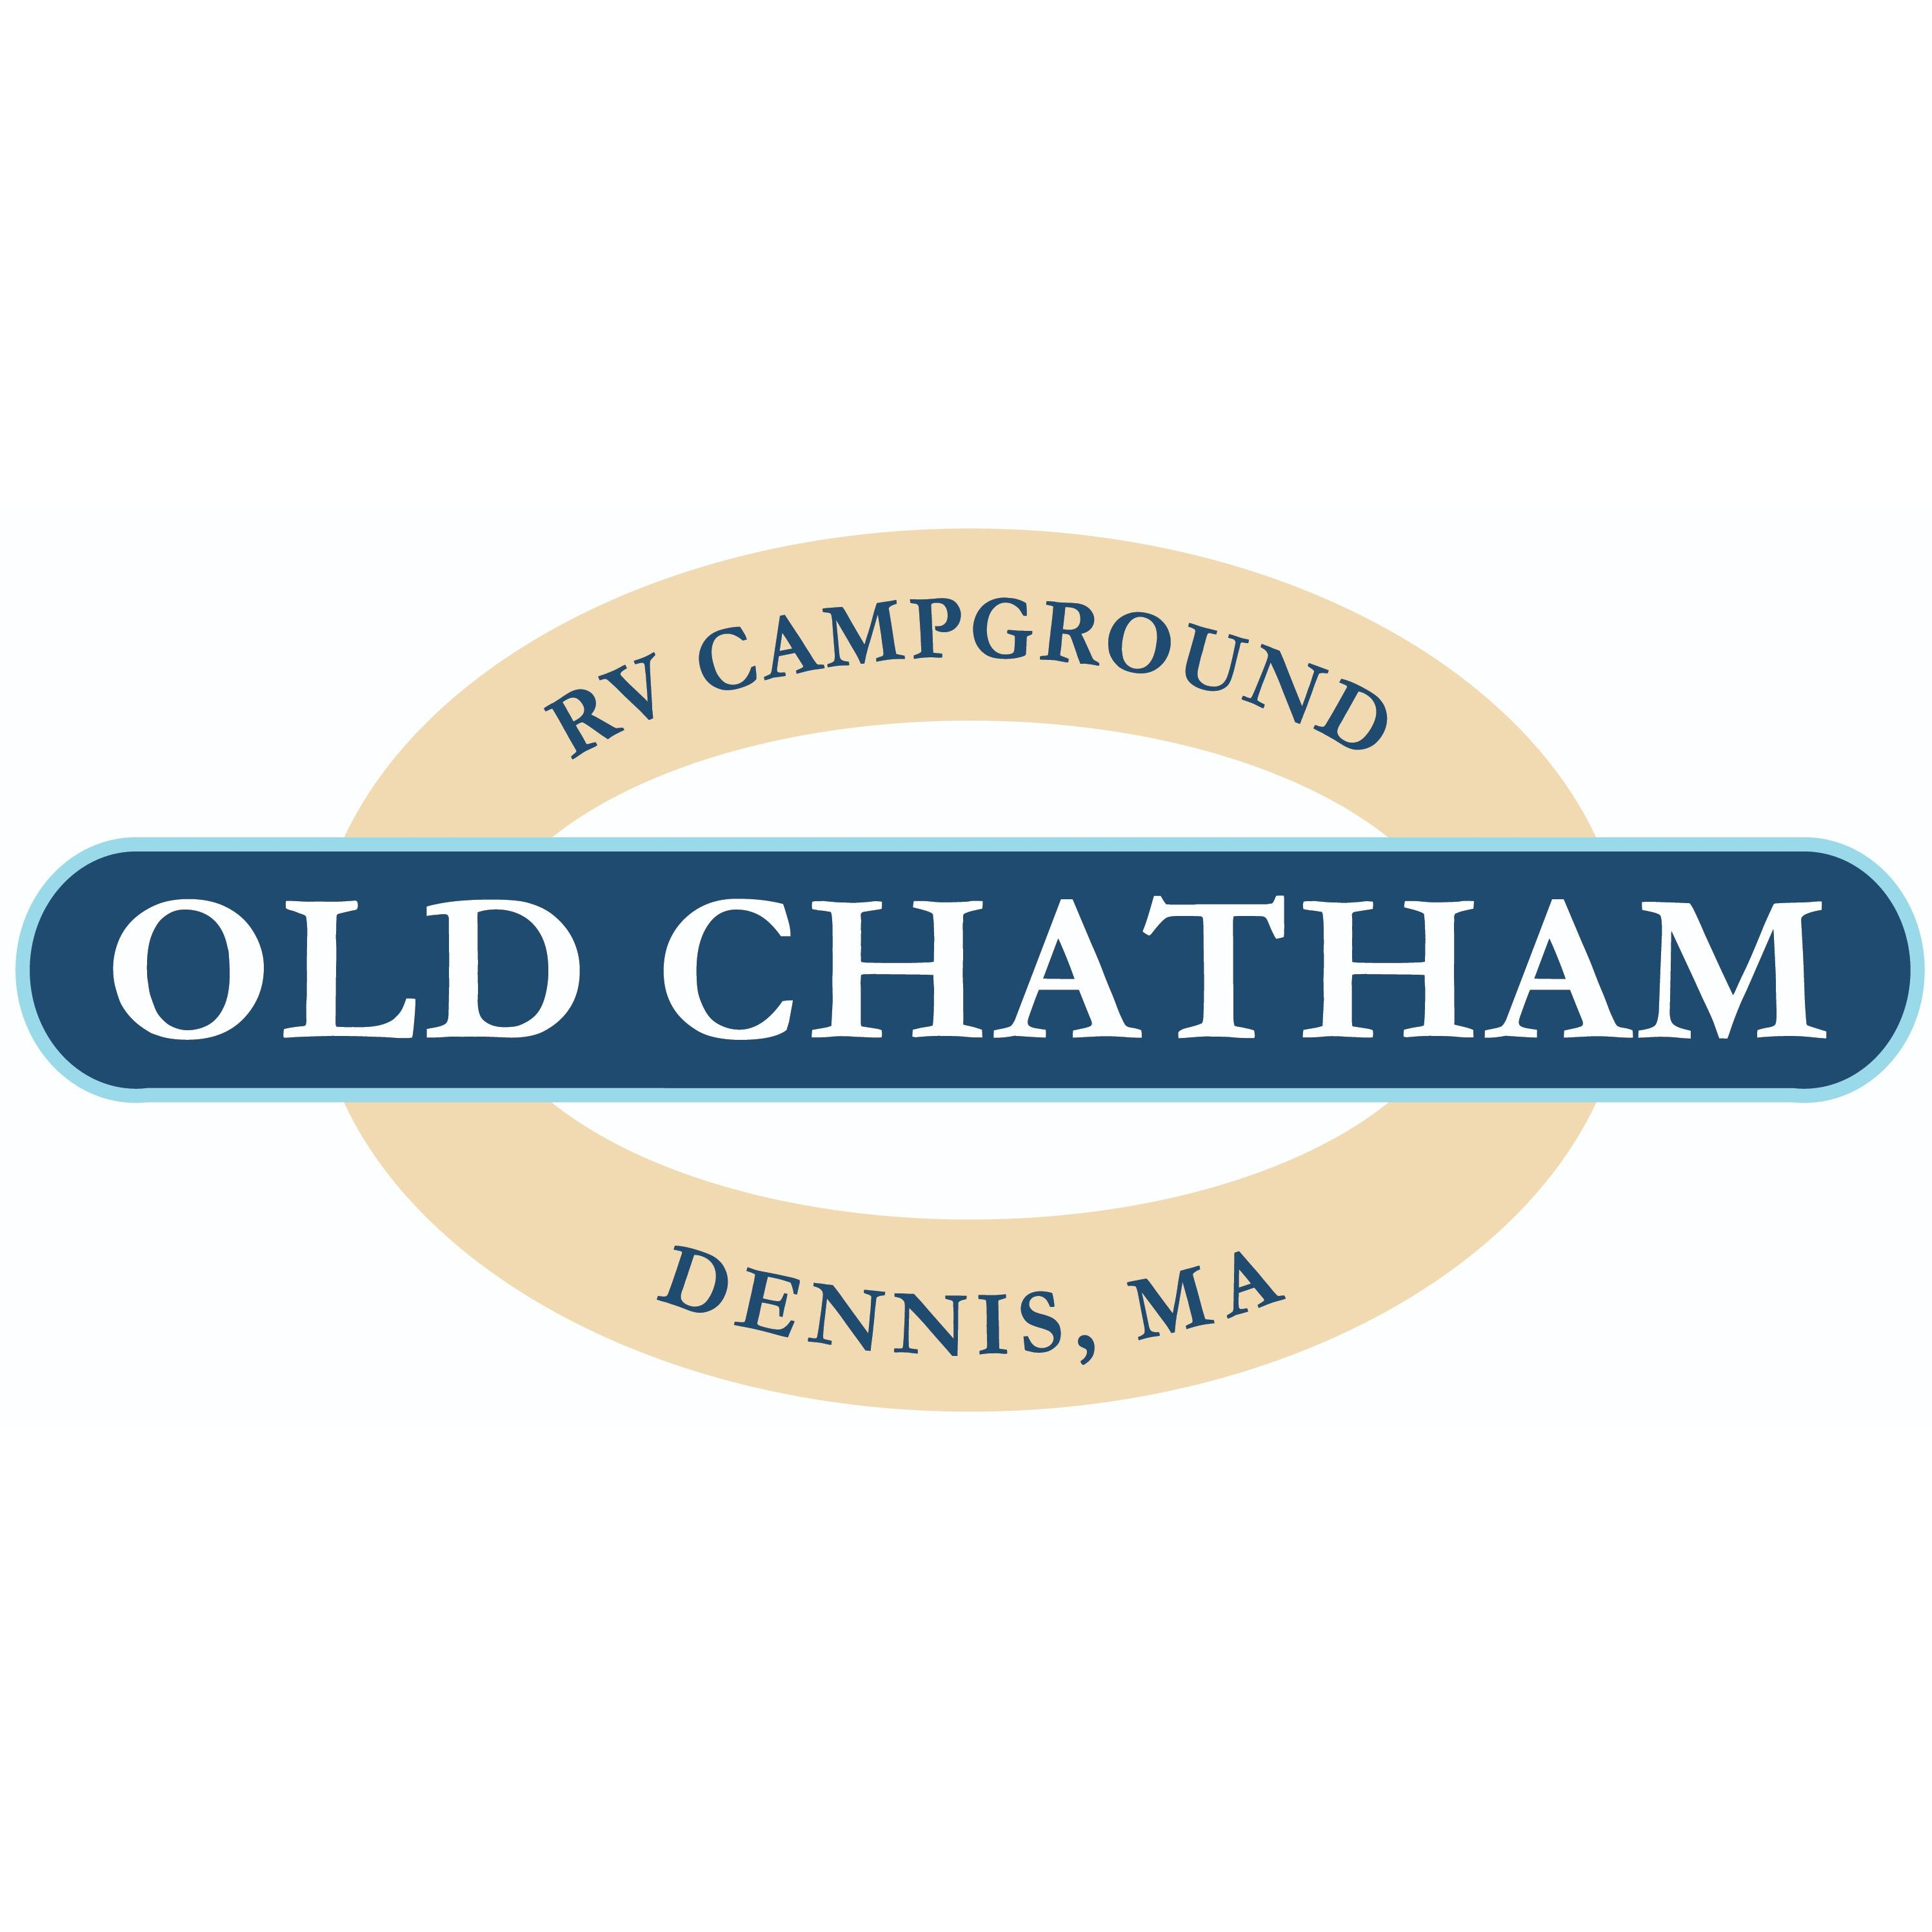 Old Chatham Road RV Campground